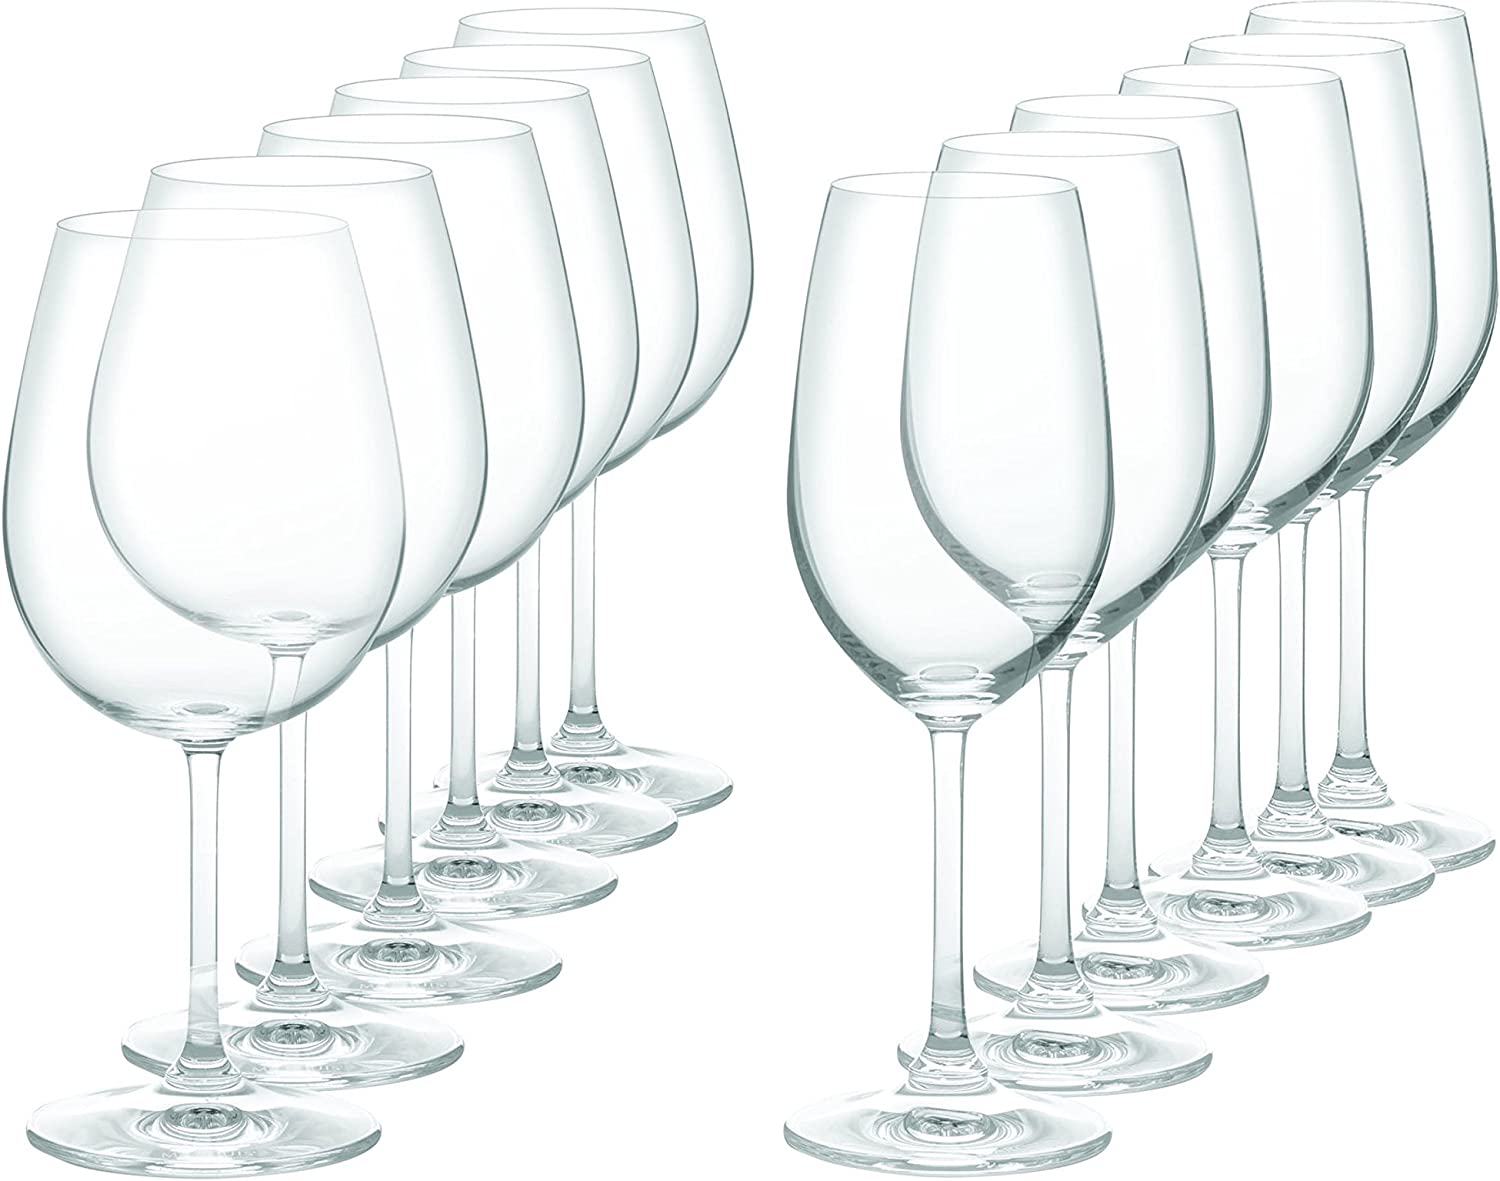 Marquis by Waterford 40005589 Vintage Wine Glasses, Set of 12, Clear